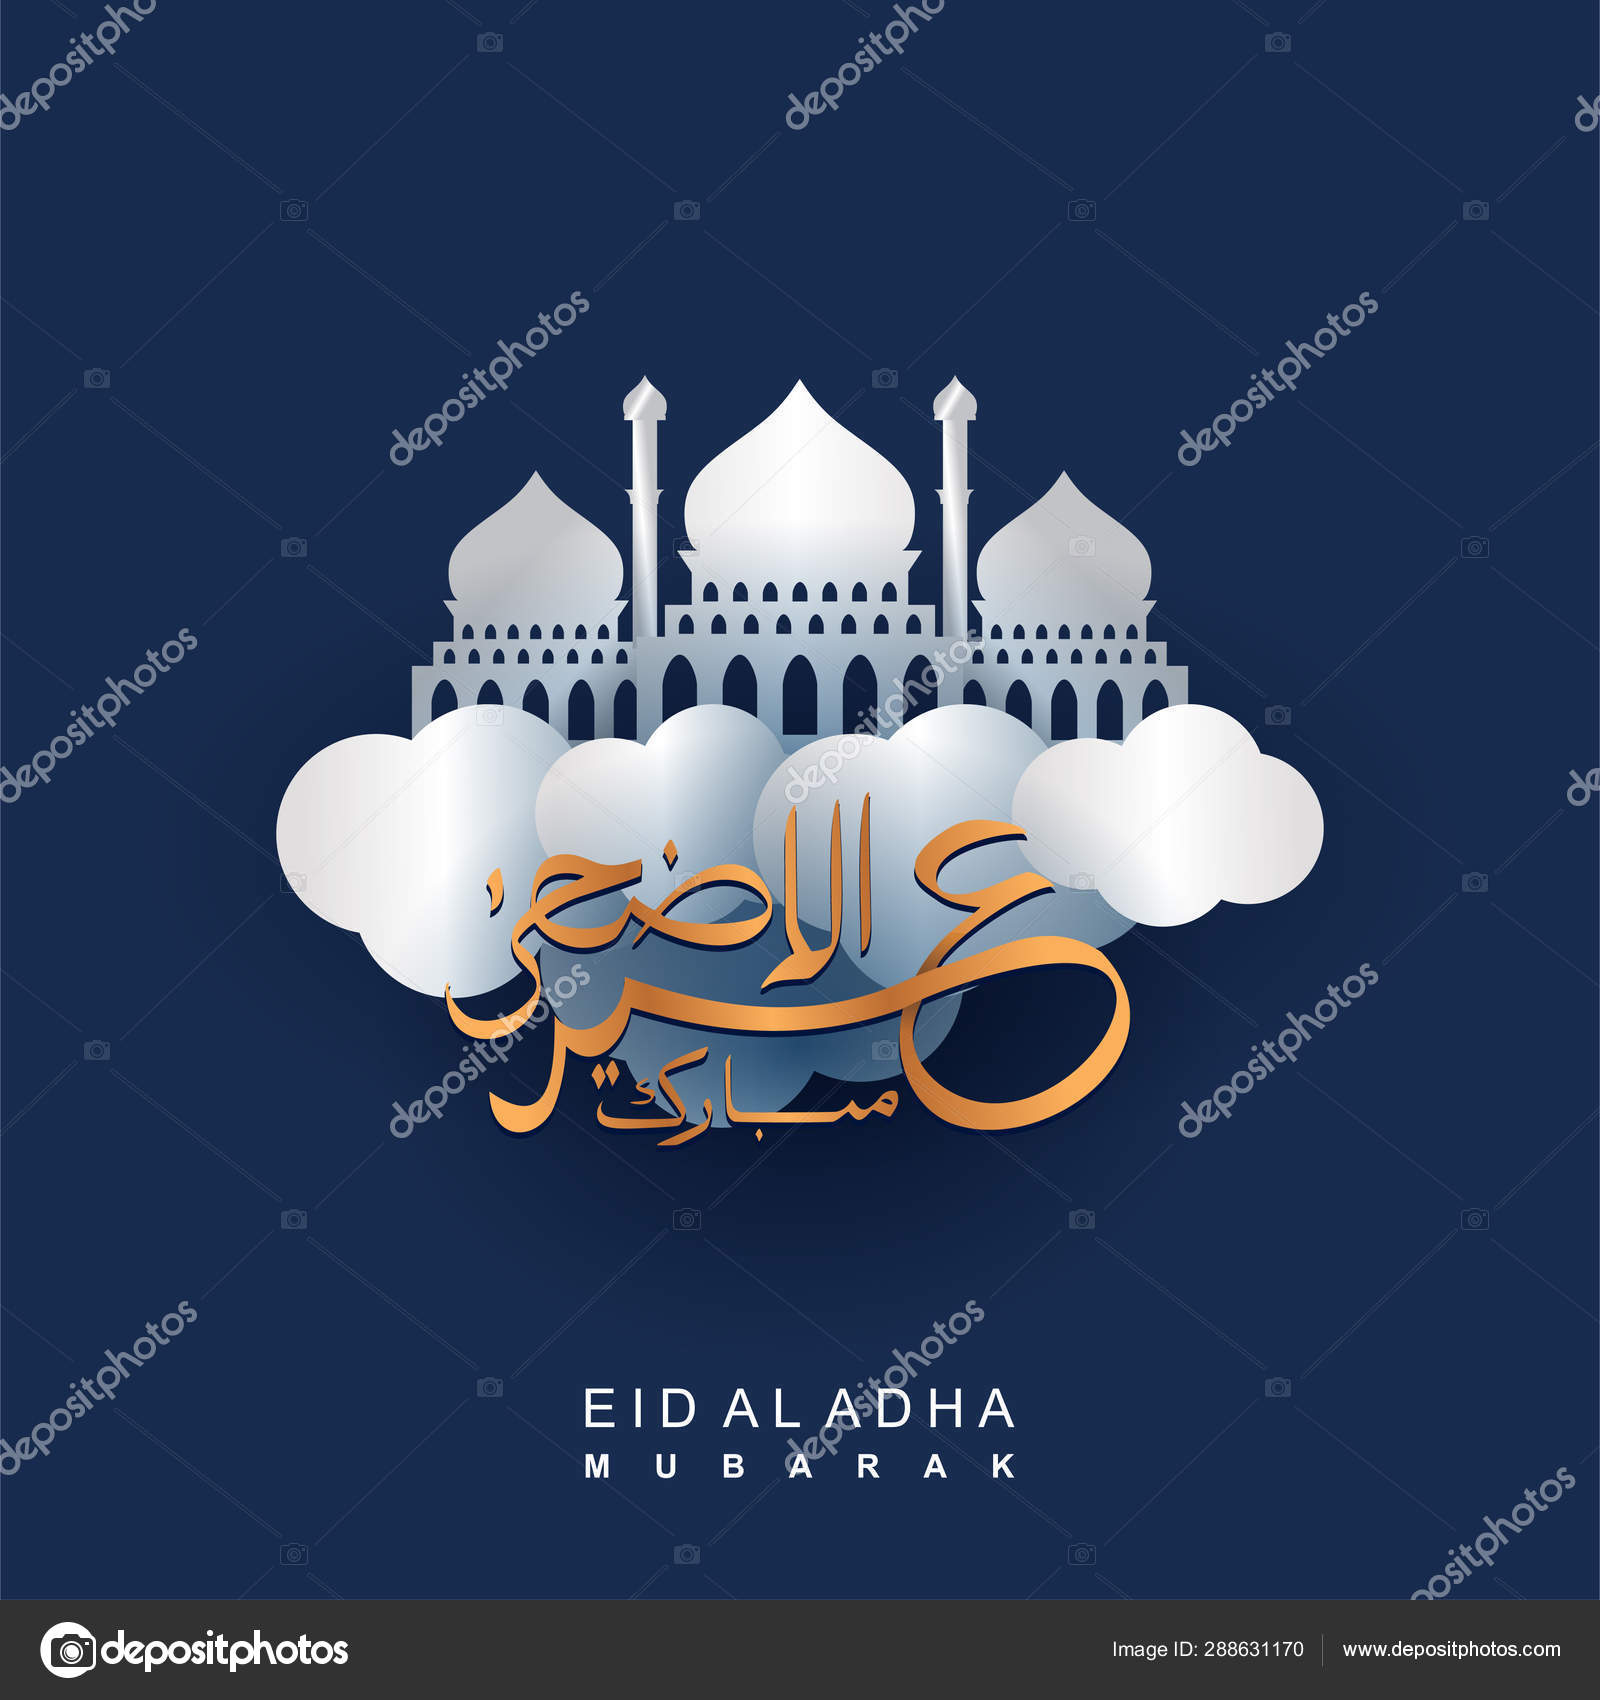 eid al adha paper cut art of mosque flying with could banner poster or background with arabic calligraphy for muslim community celebration blue colors design stock vector c ngupakarti 288631170 eid al adha paper cut art of mosque flying with could banner poster or background with arabic calligraphy for muslim community celebration blue colors design stock vector c ngupakarti 288631170